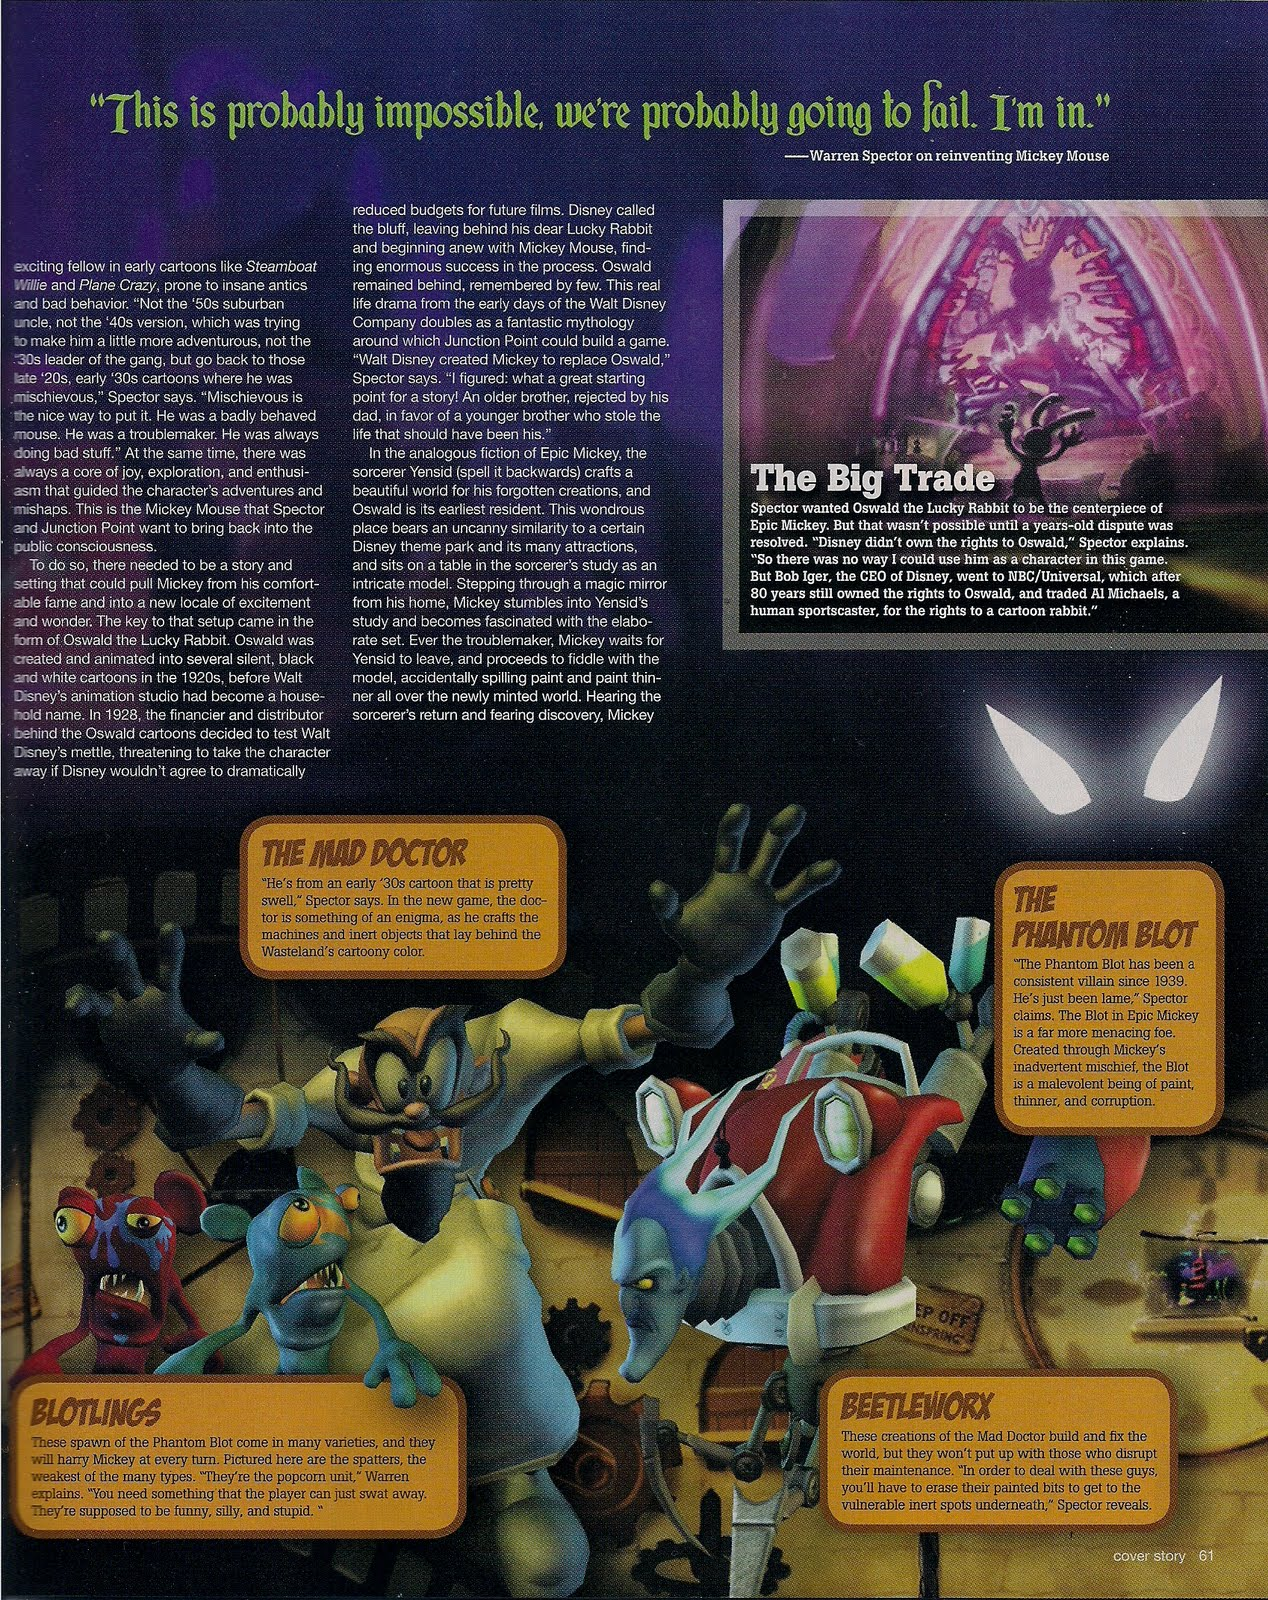 EpicMickey Scans GameInformer 05